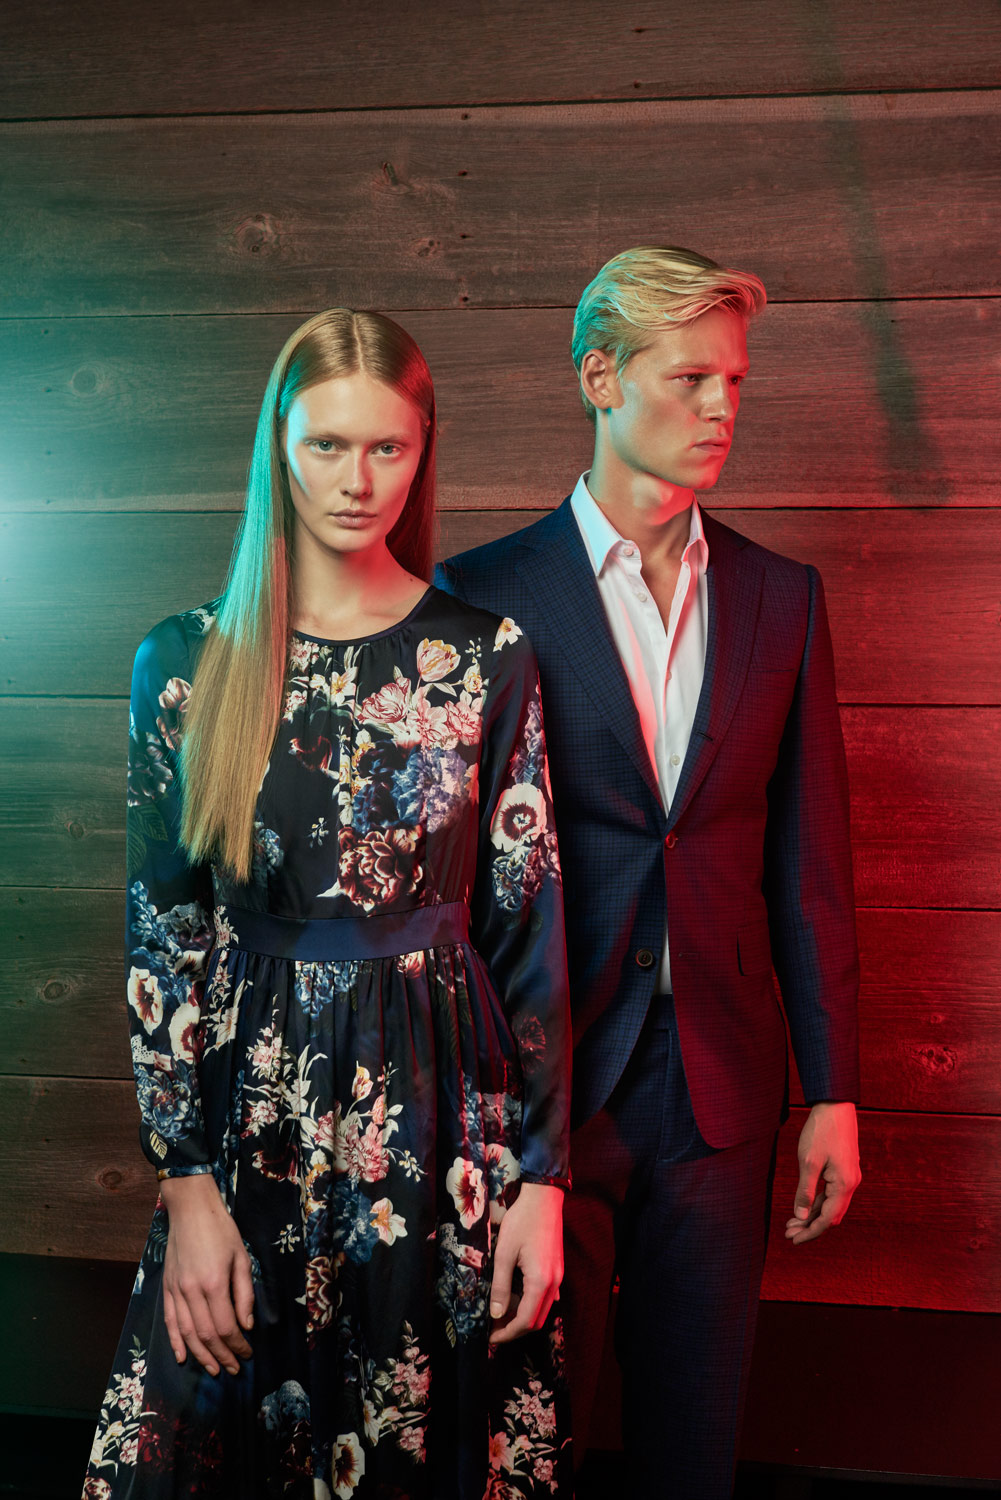 Editorial fashion series for Bogstadveien Magazine in Oslo by Håvard Schei.